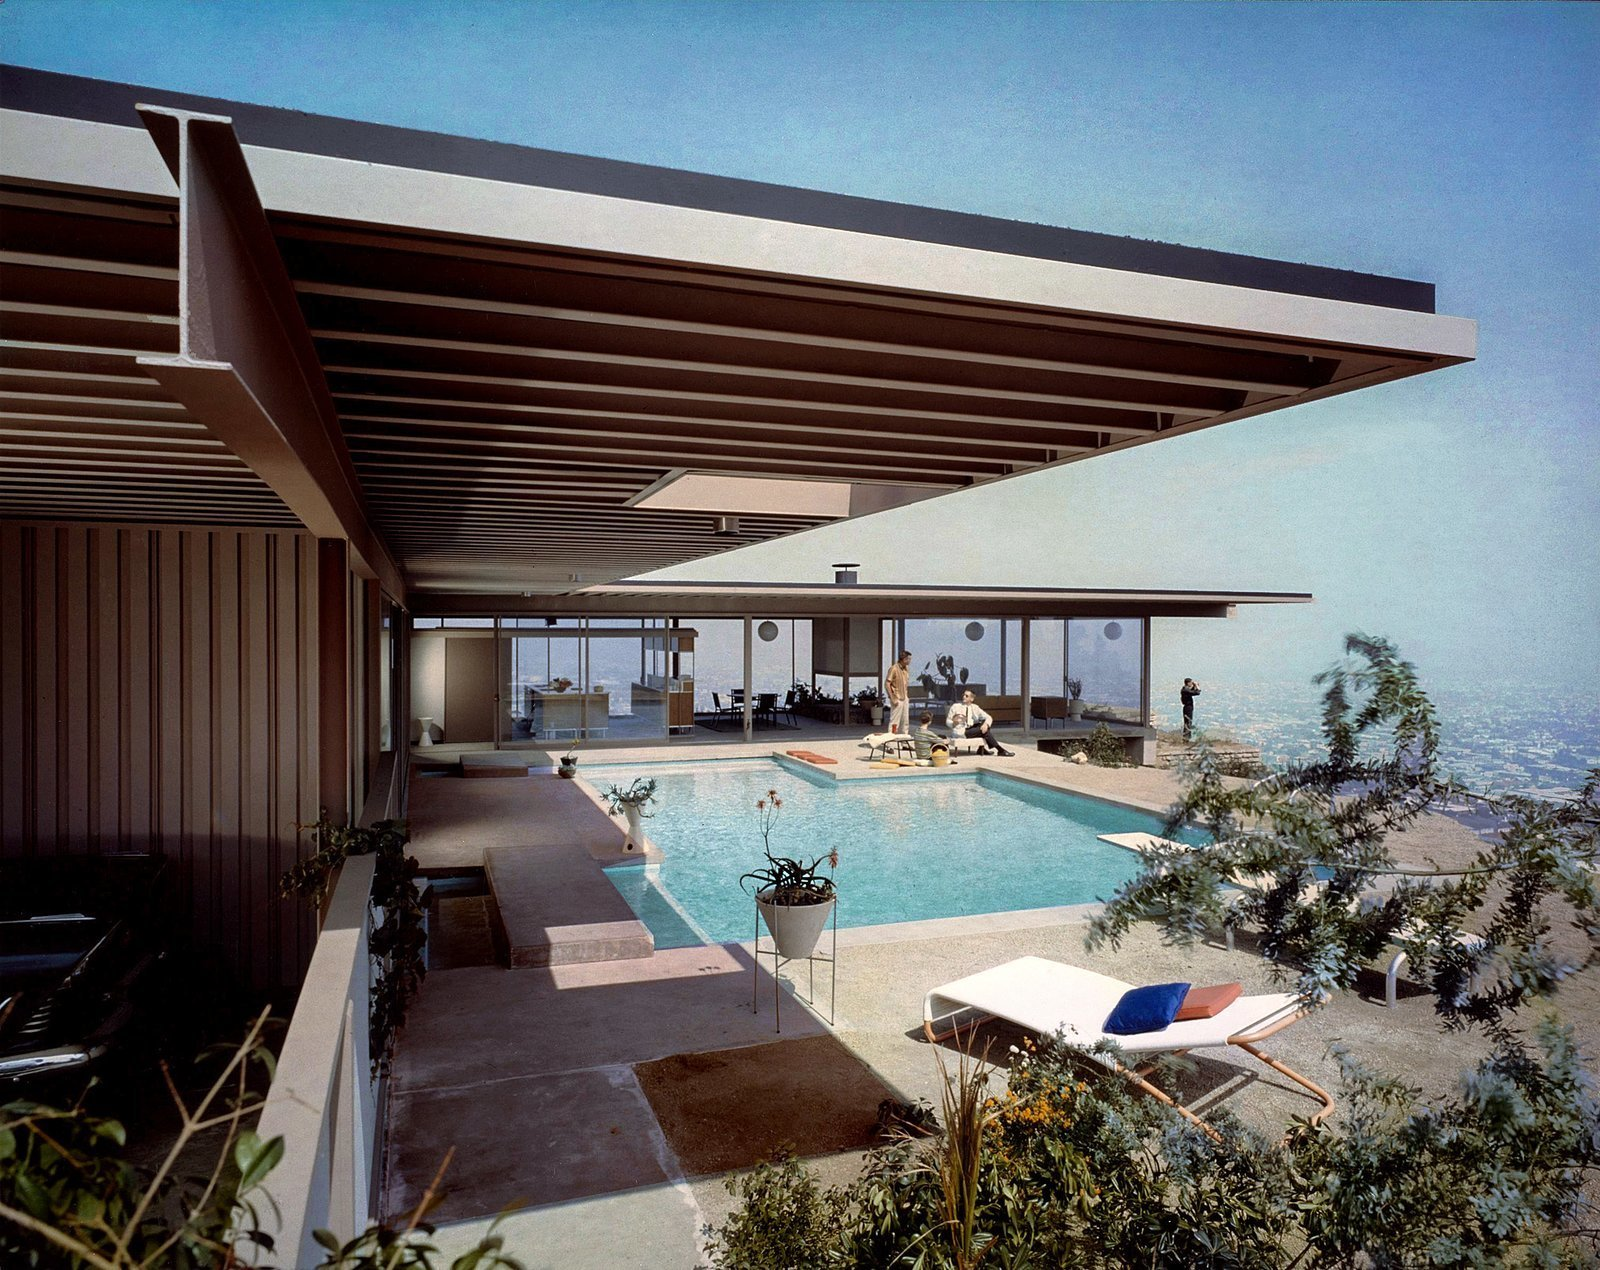 Photo 1 of 4 in Spotlight on the Midcentury Design Duo Who Invented the Term Indoor/Outdoor Living